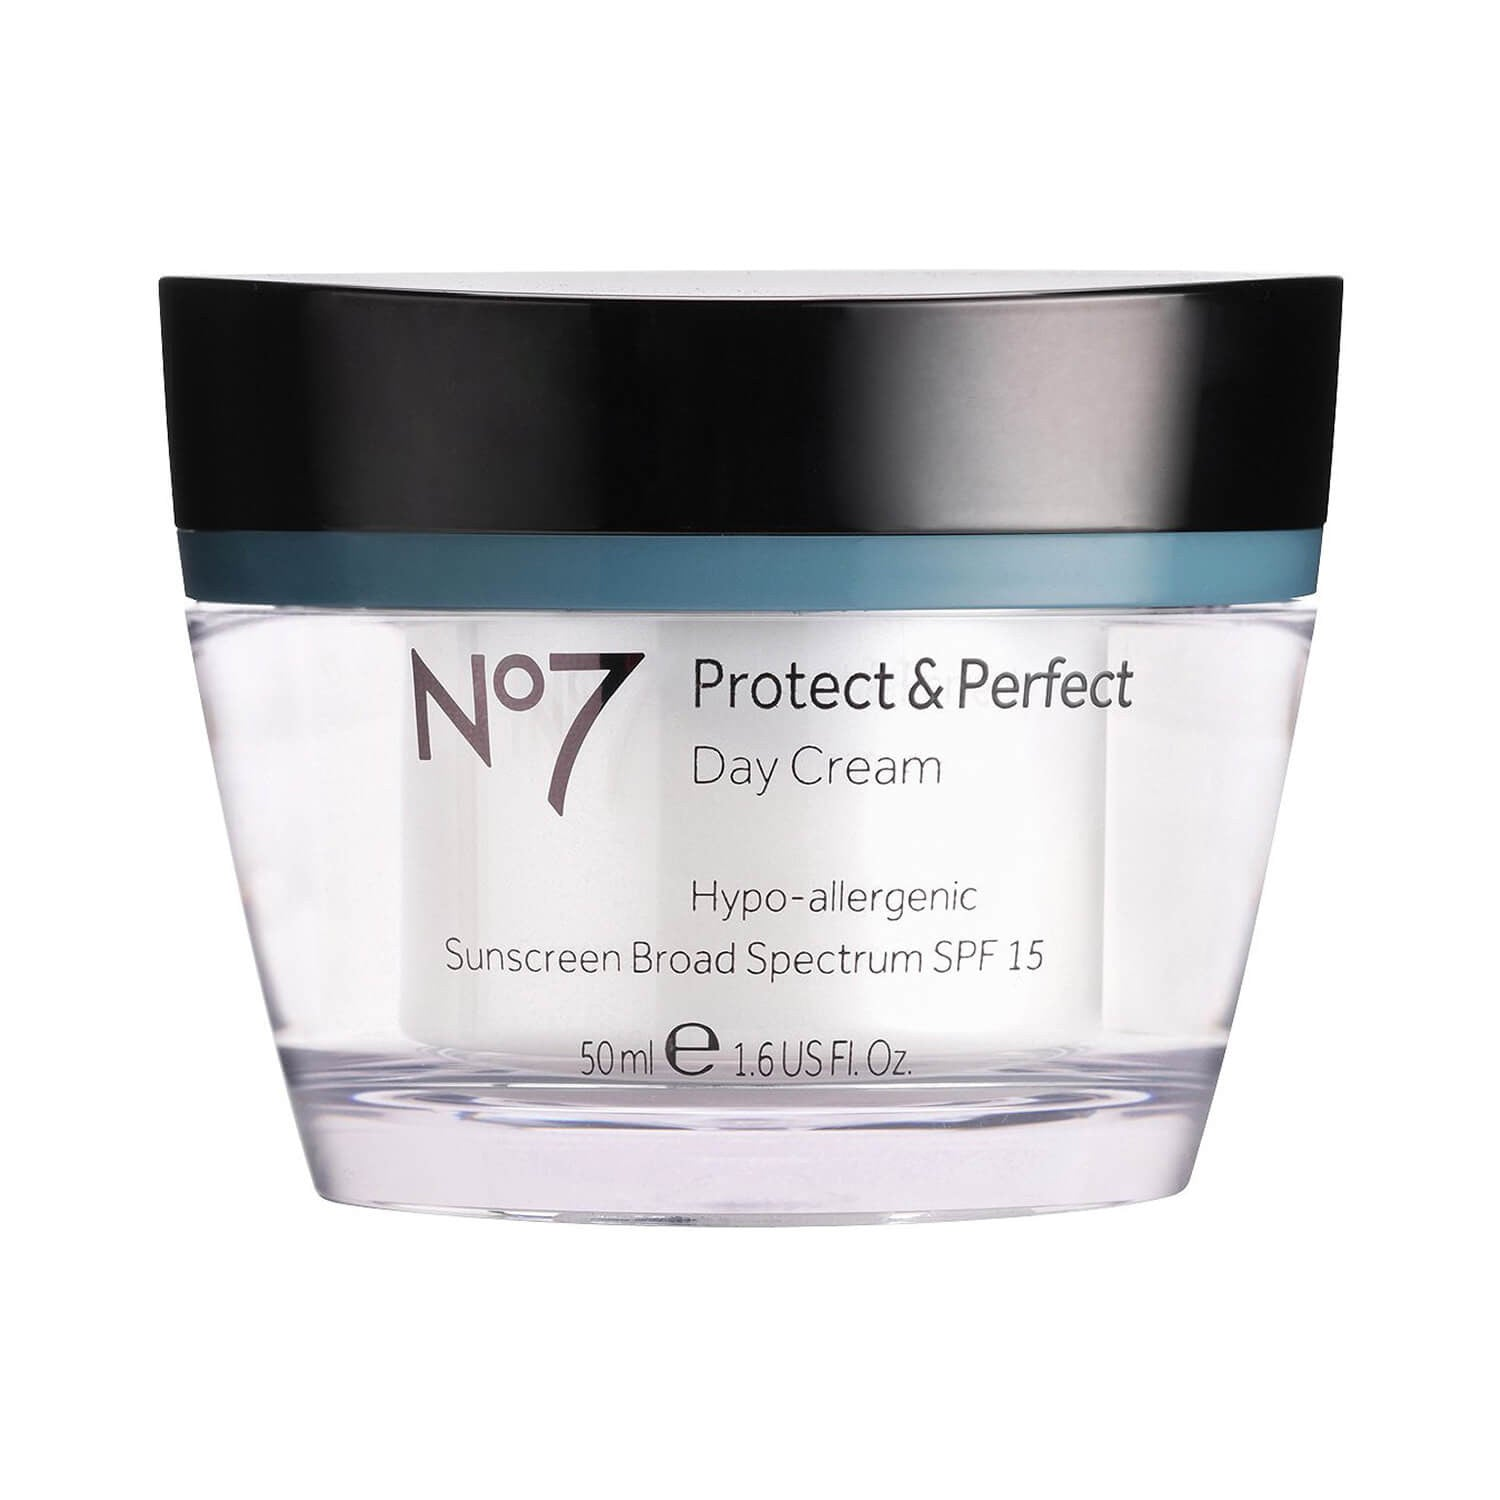 Boots No7 Protect Perfect Day Cream